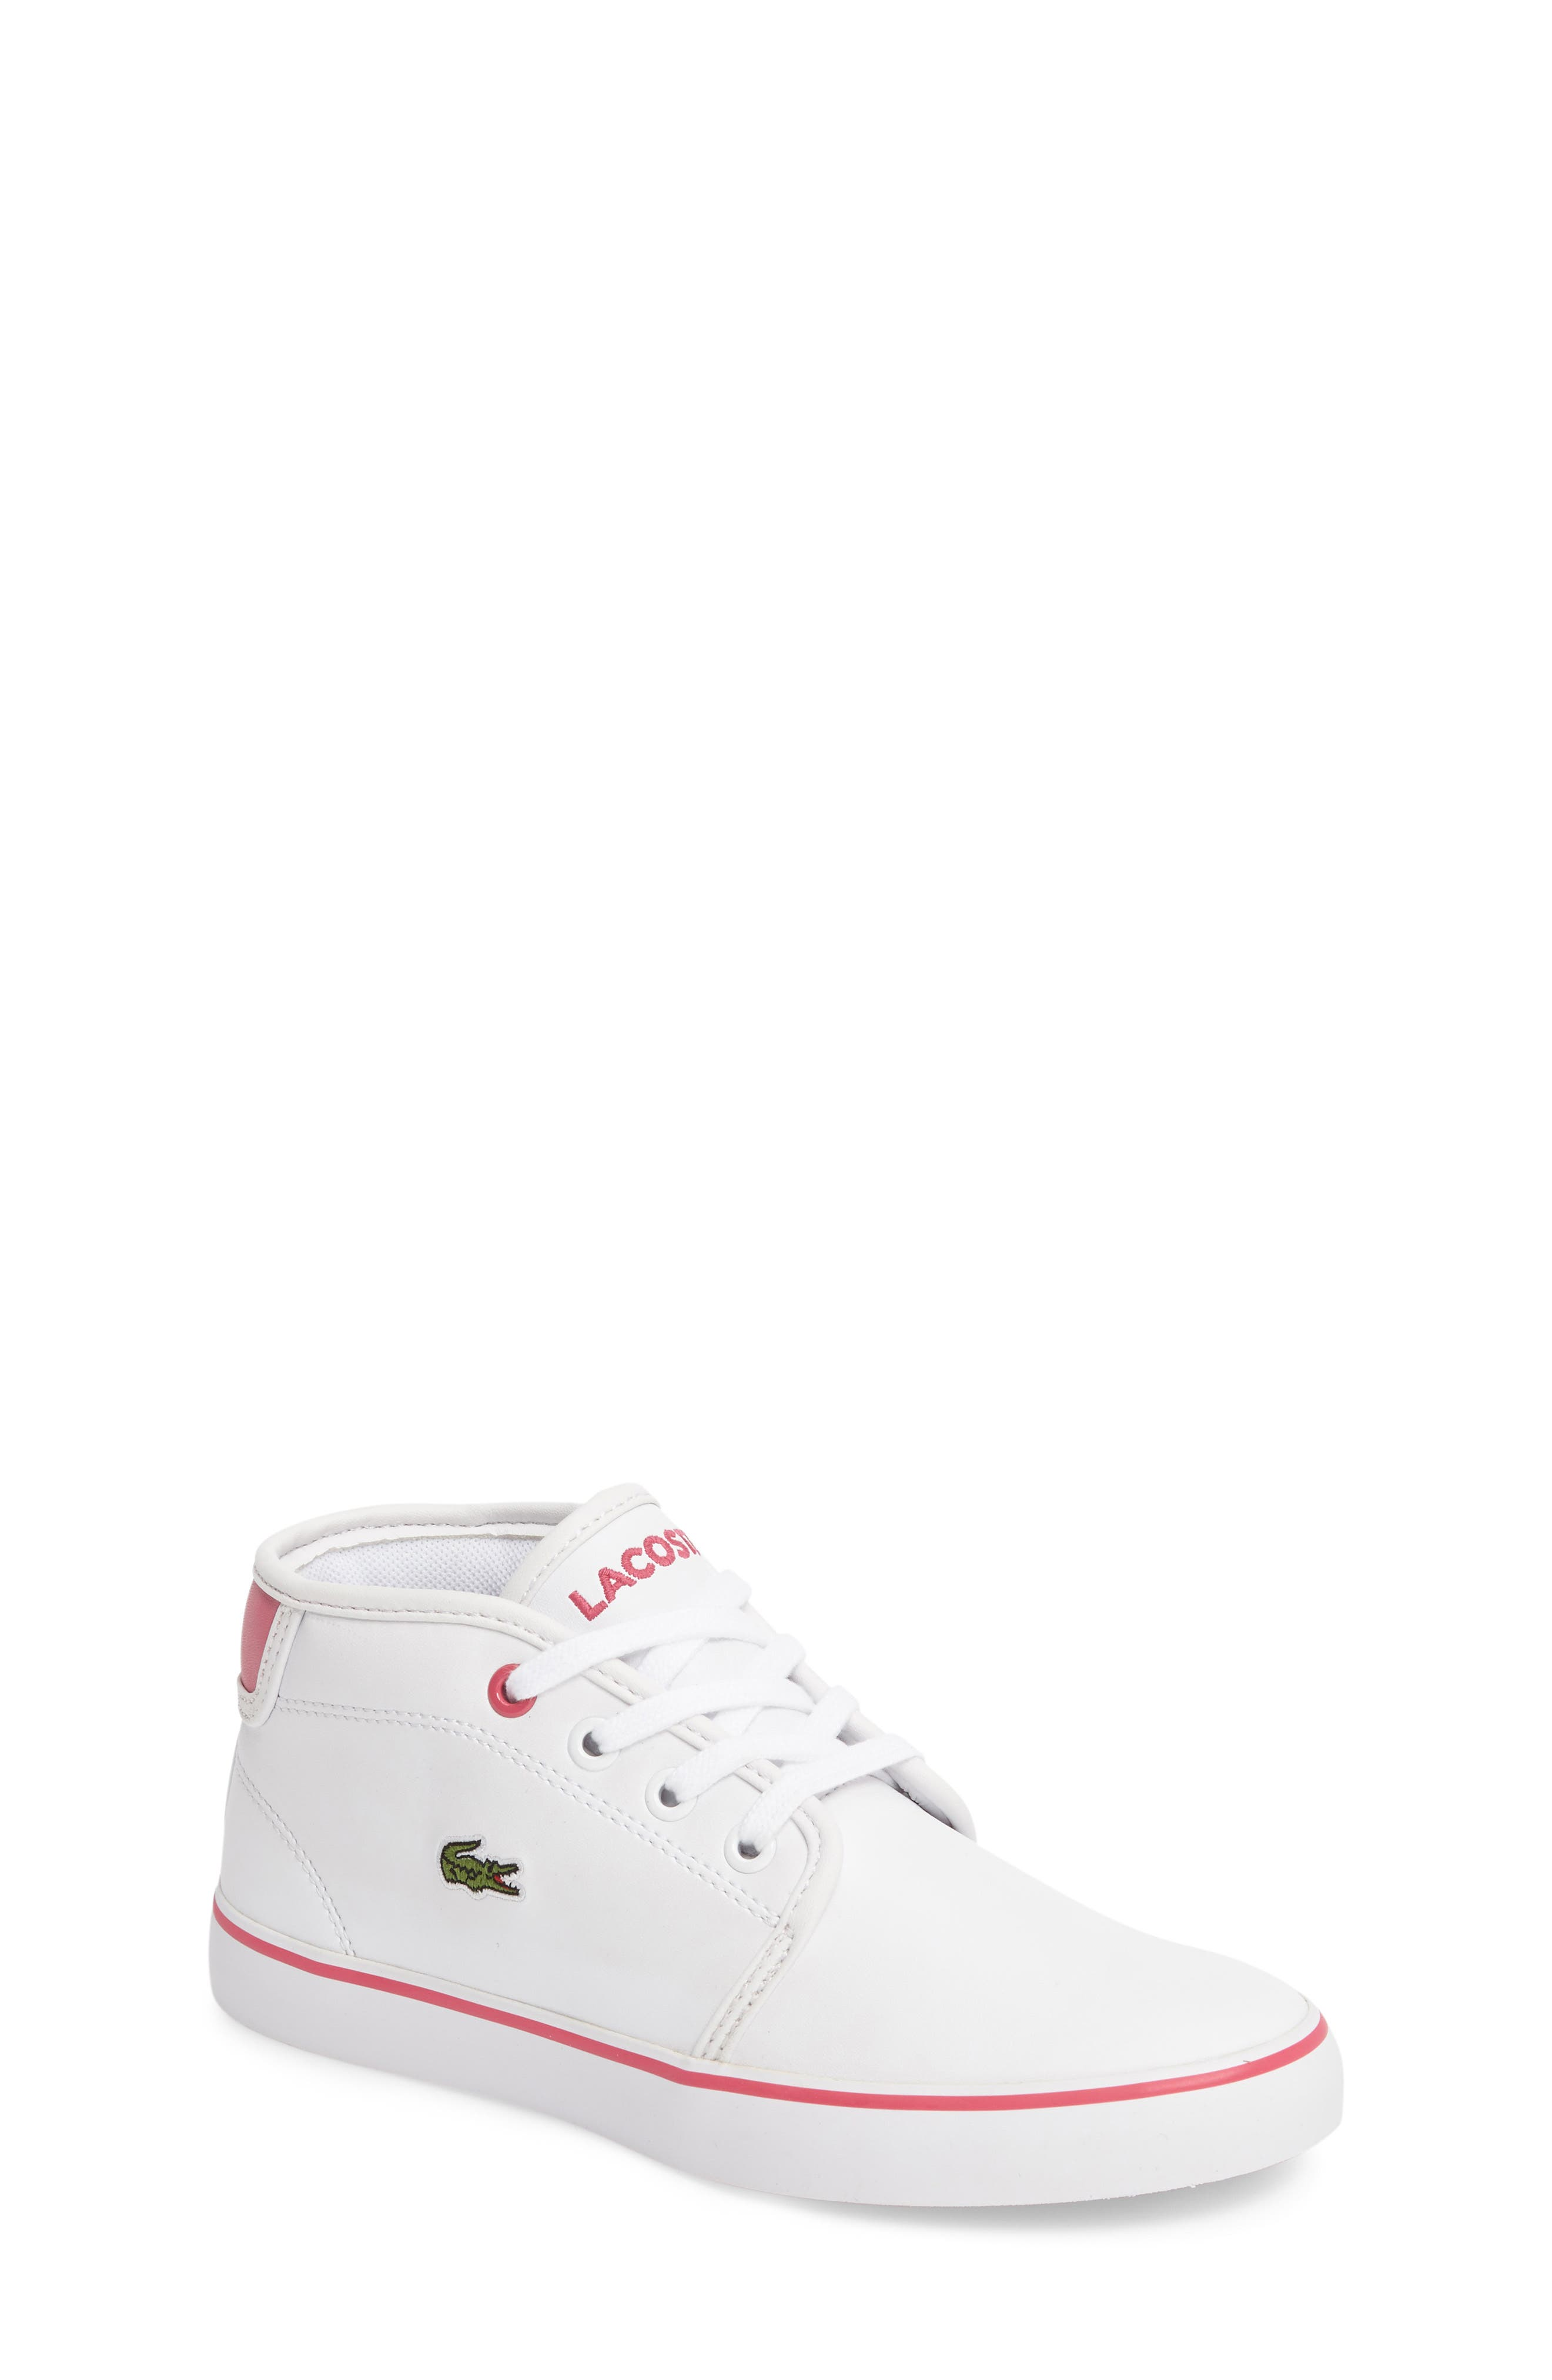 Ampthill Mid-Top Sneaker,                         Main,                         color, 161